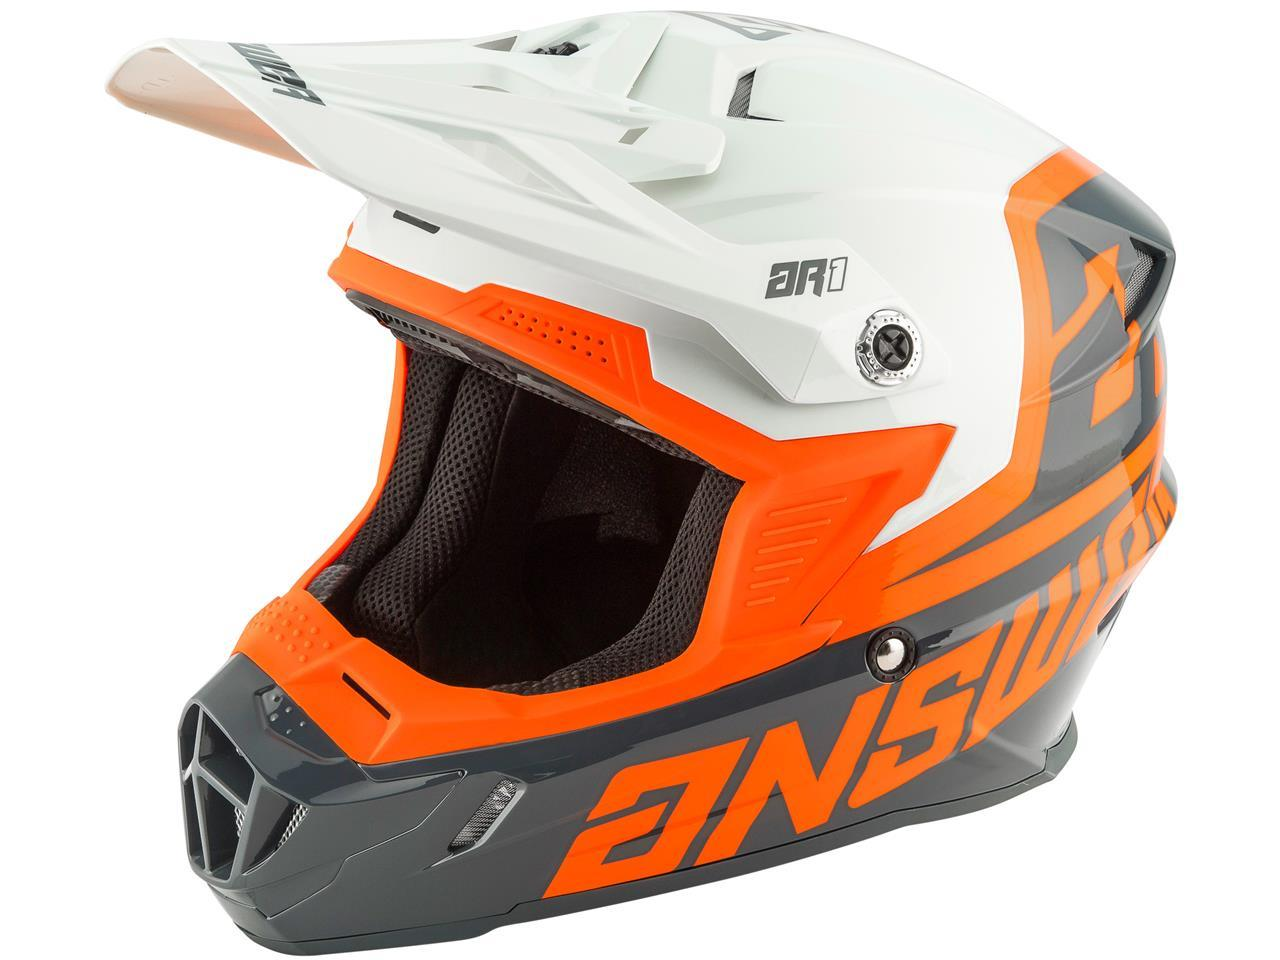 Casque ar1 orange 1